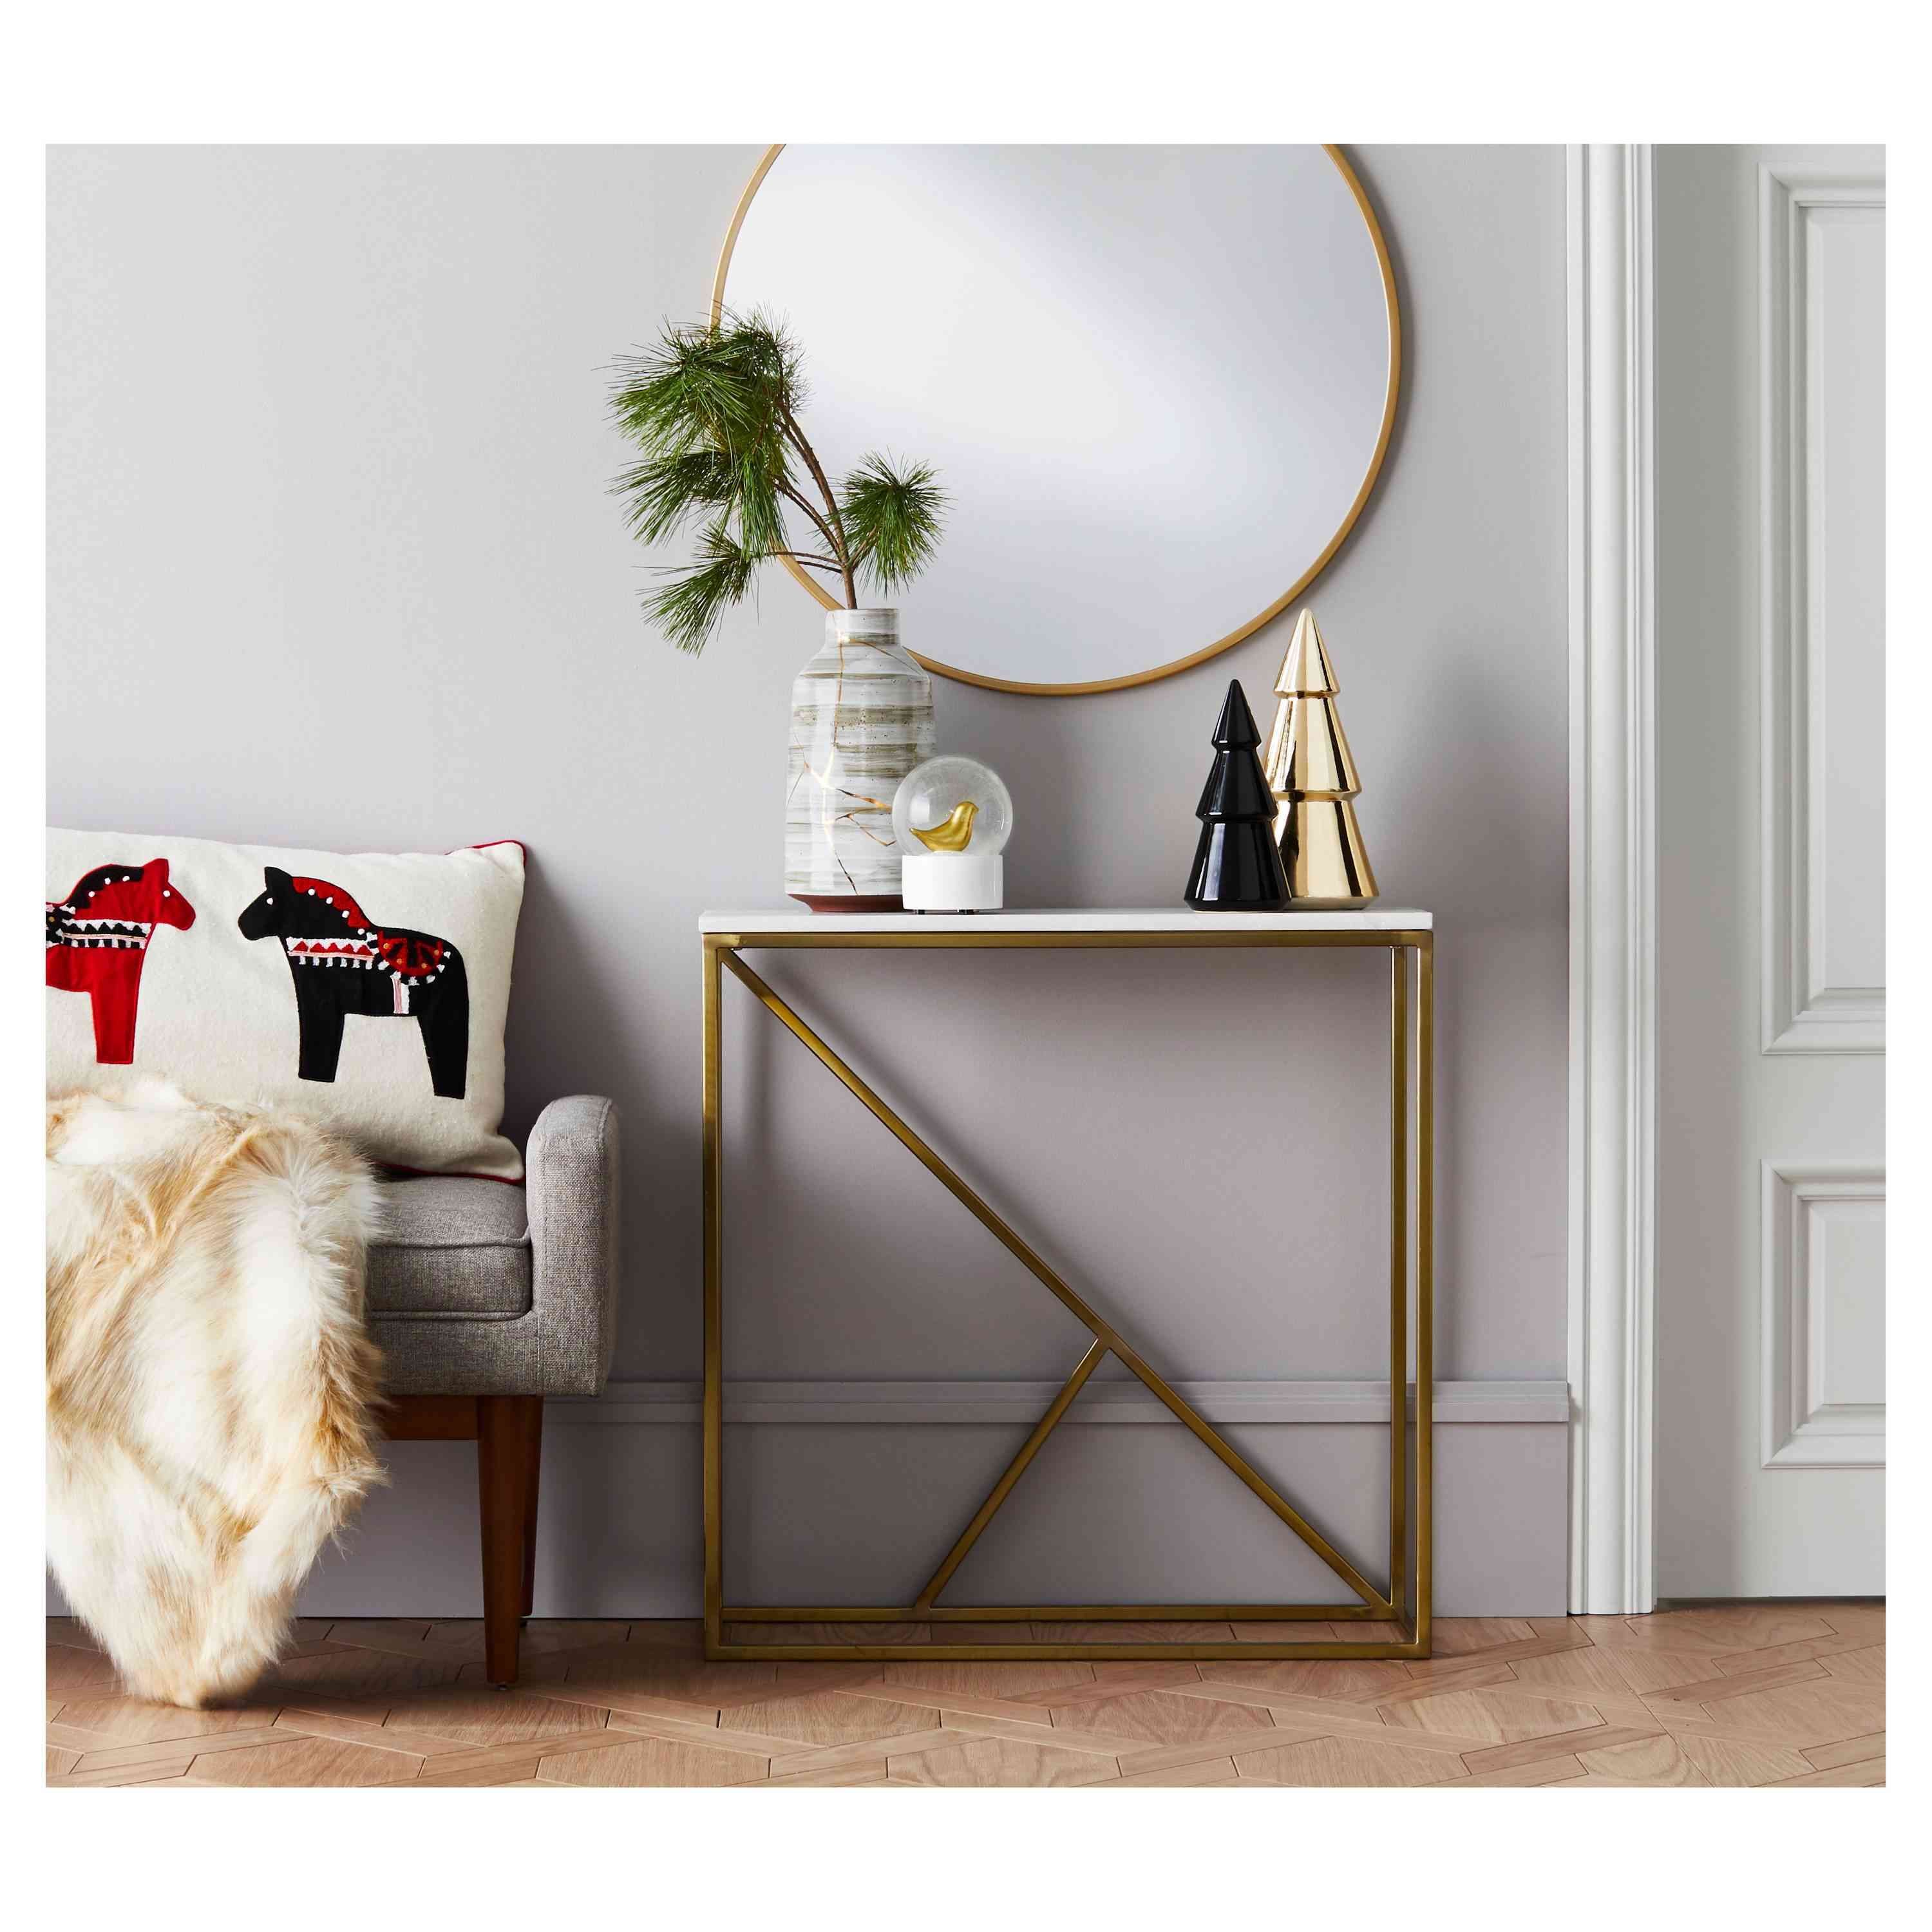 The 5 Best Wall Mirrors